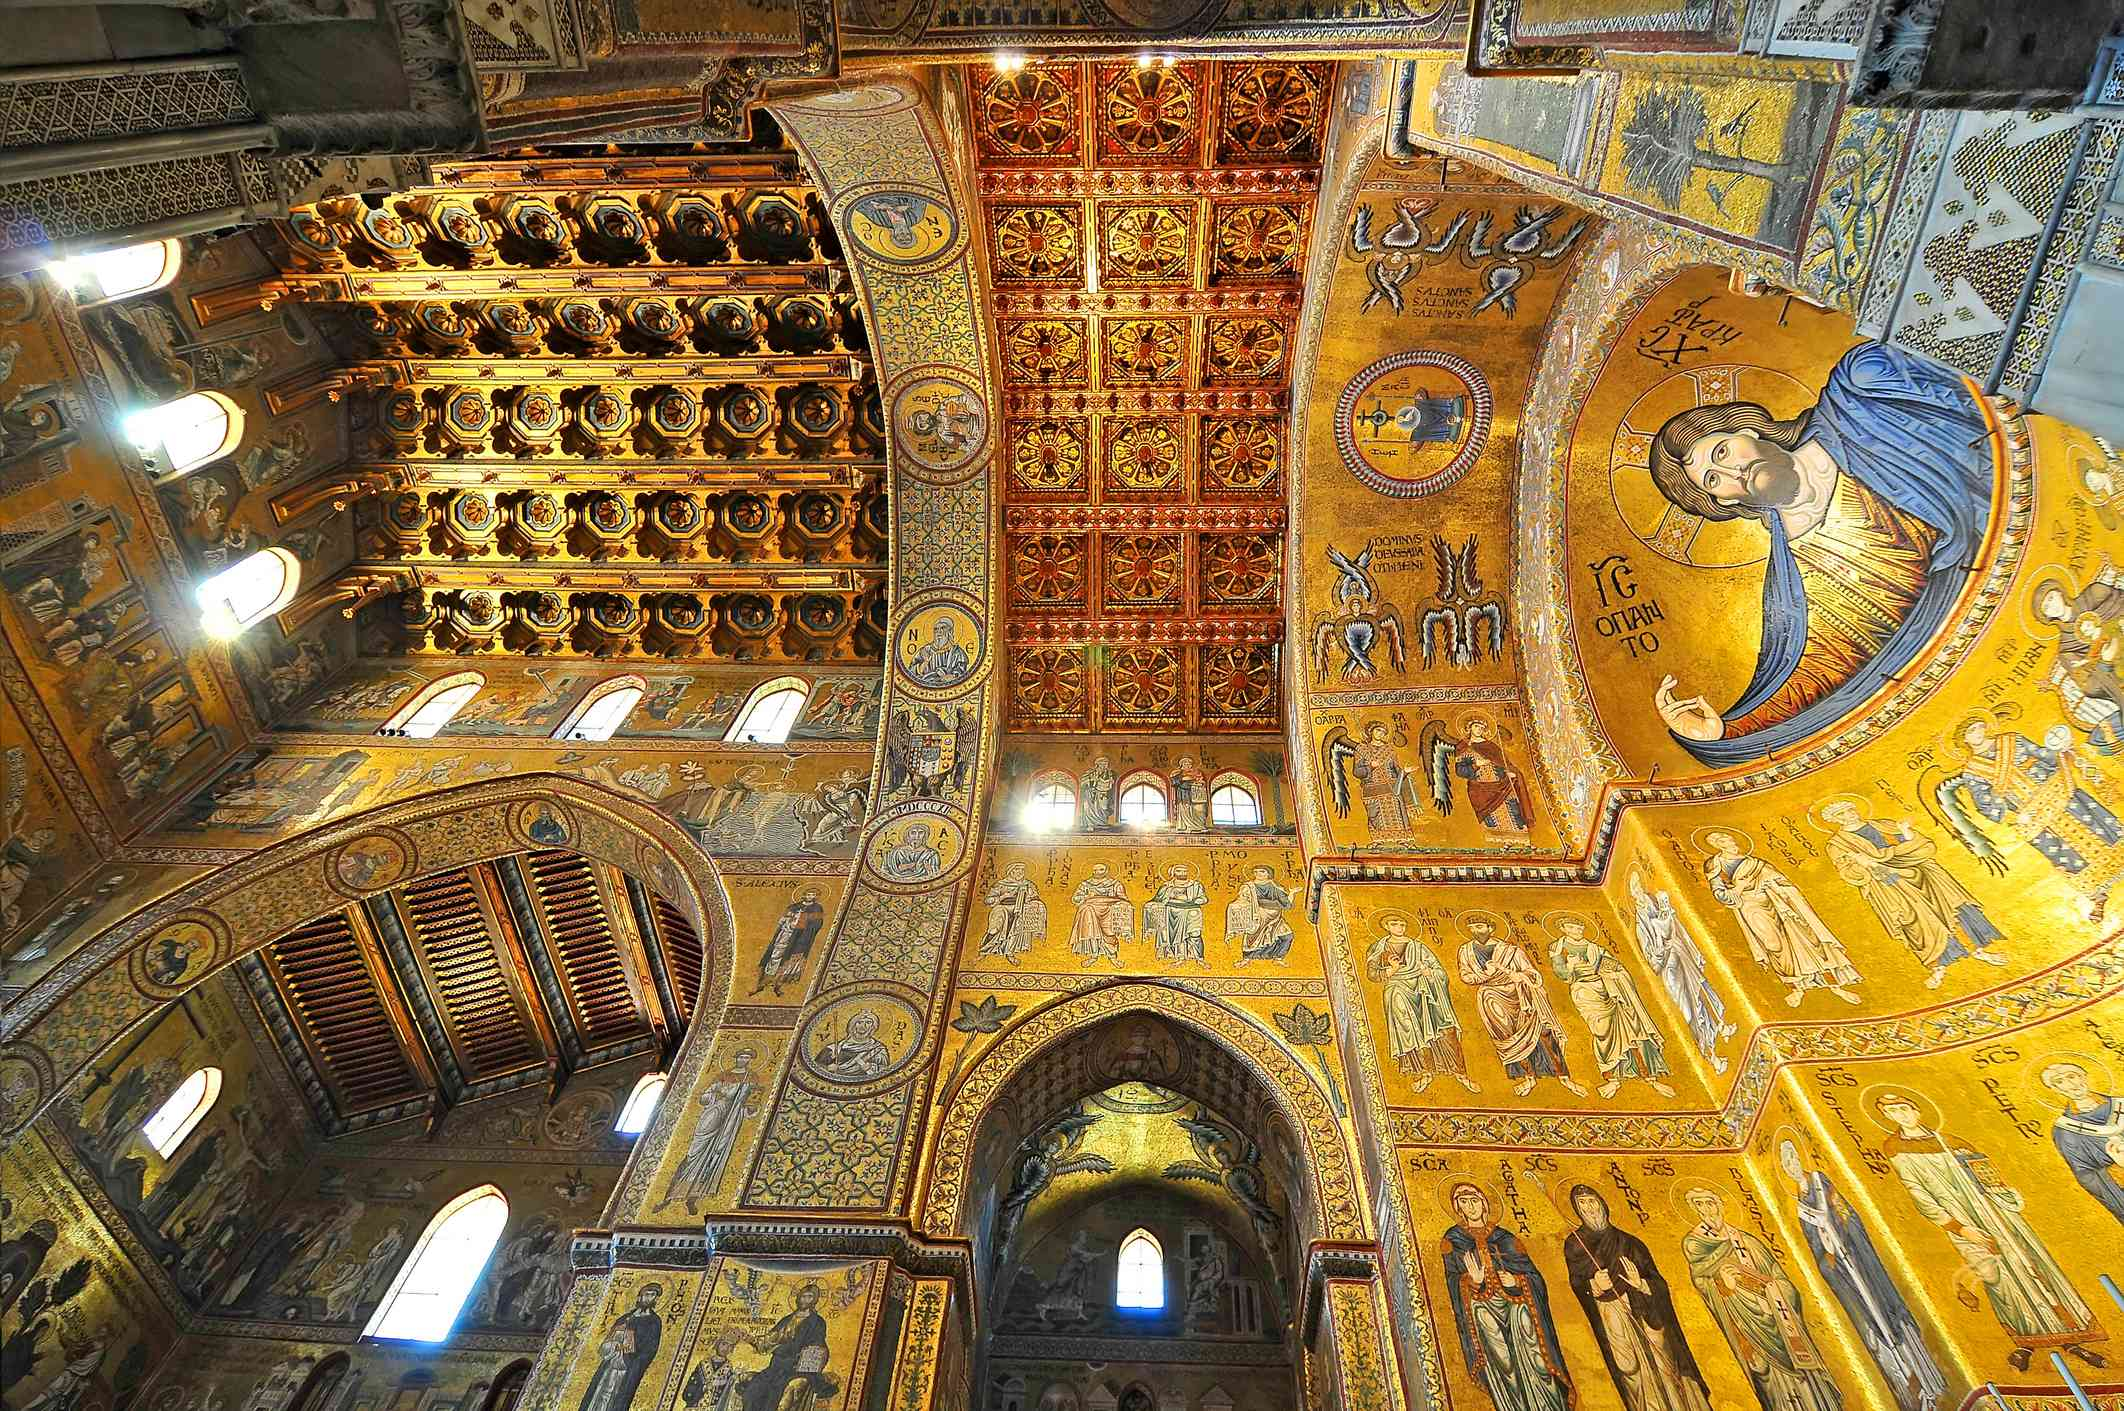 Interior of the famous Cathedral Santa Maria Nuova of Monreale near Palermo in Sicily Italy.